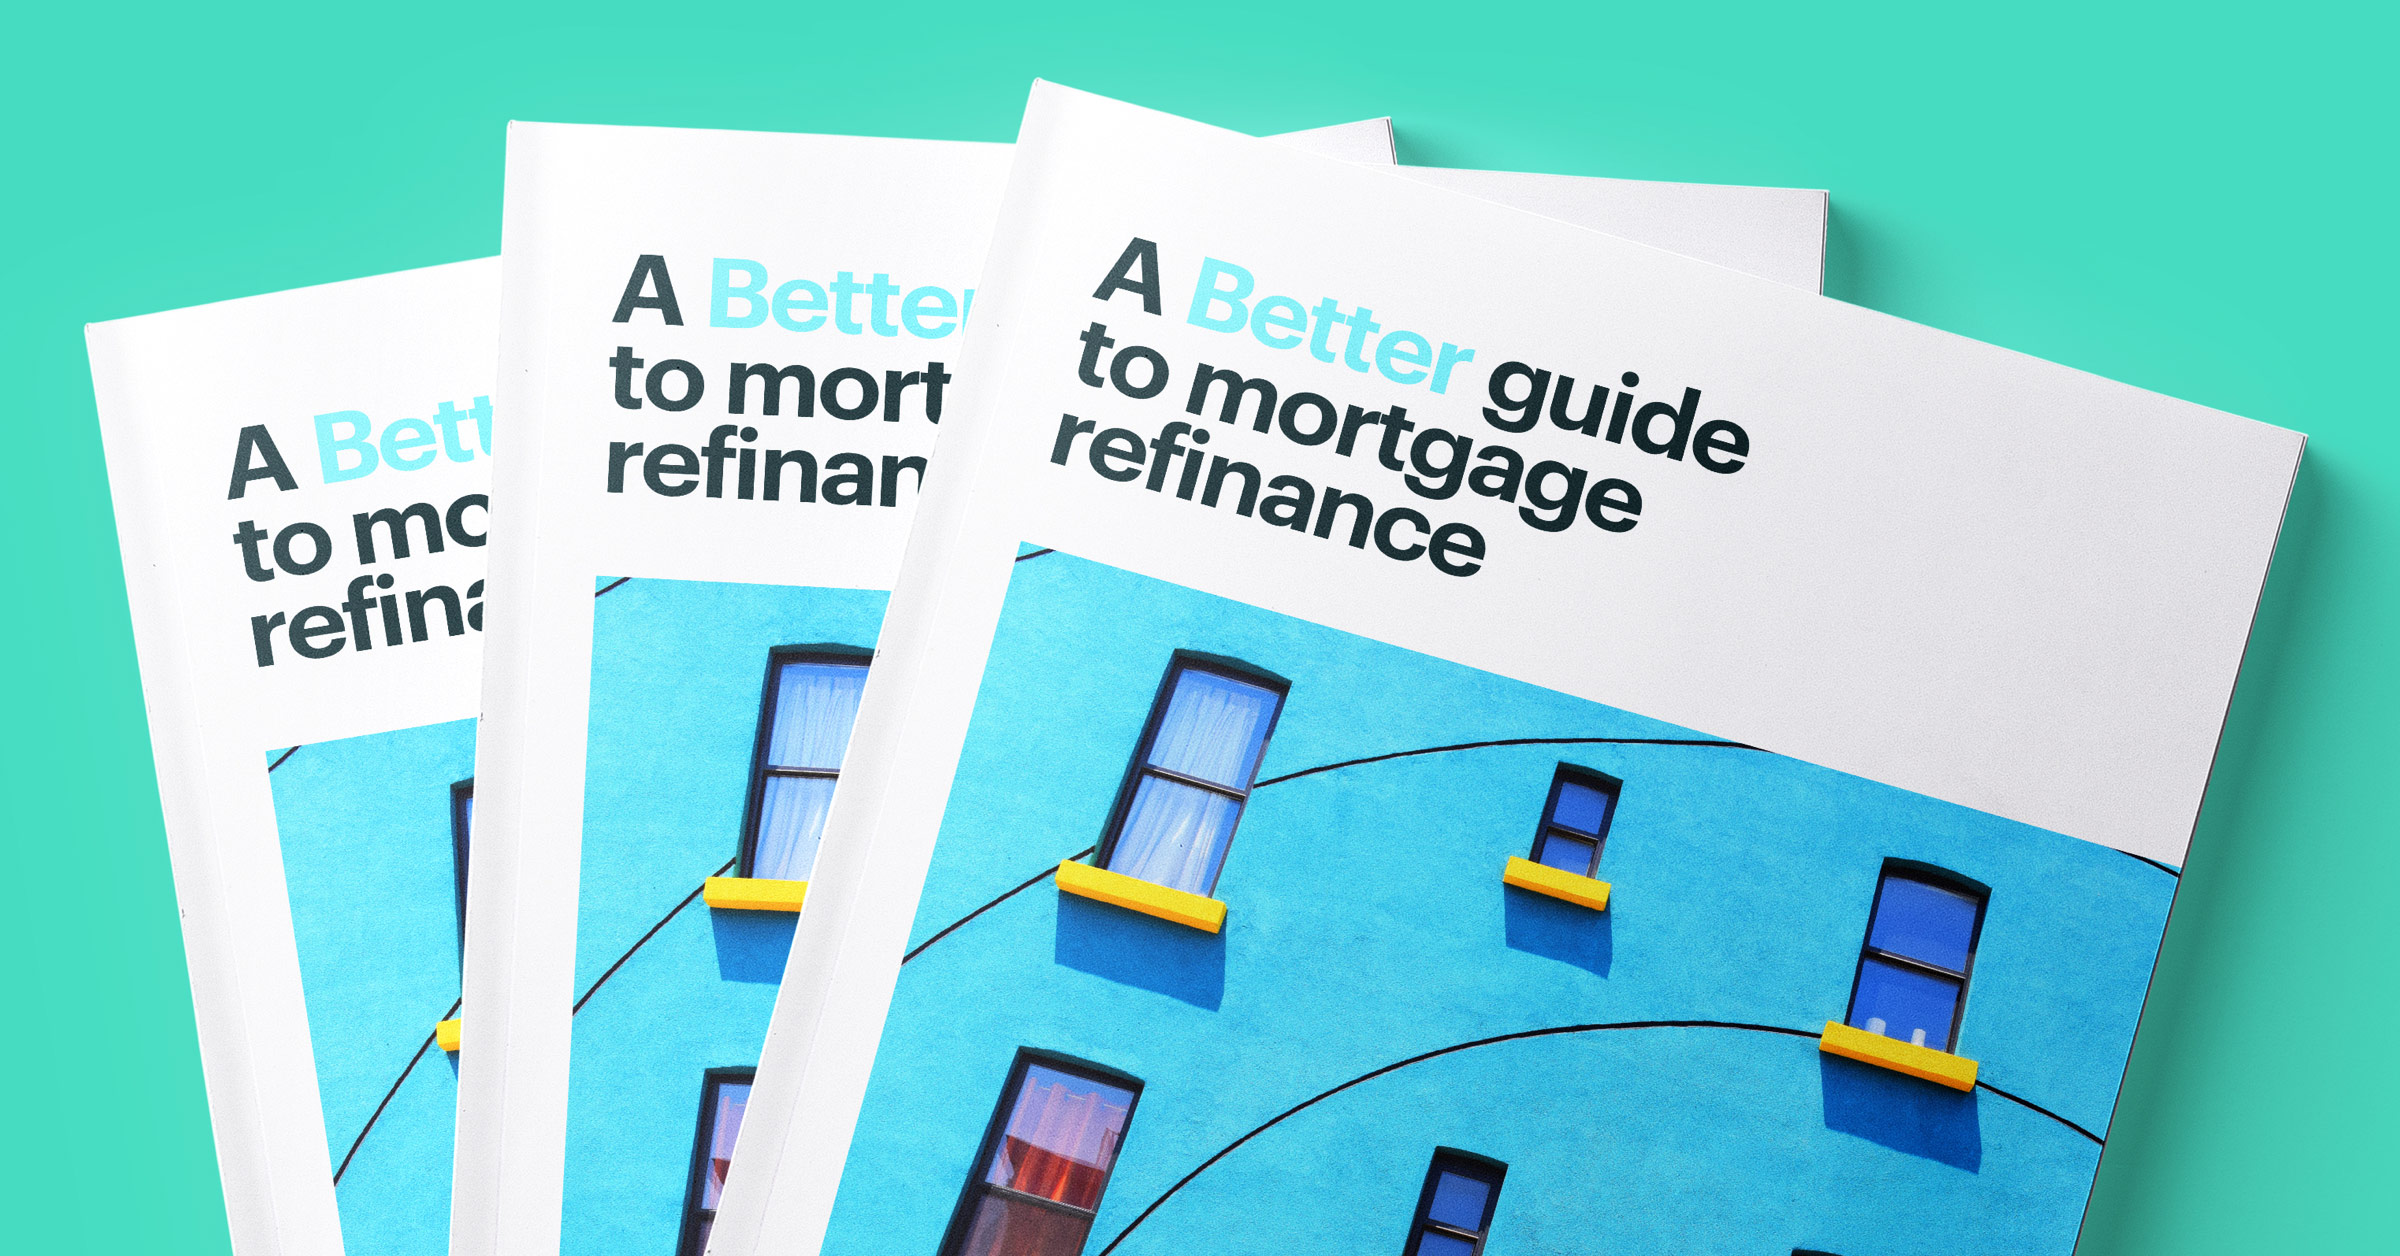 Image of Three Guide Books Titled A Better Guide to Mortgage Refinance